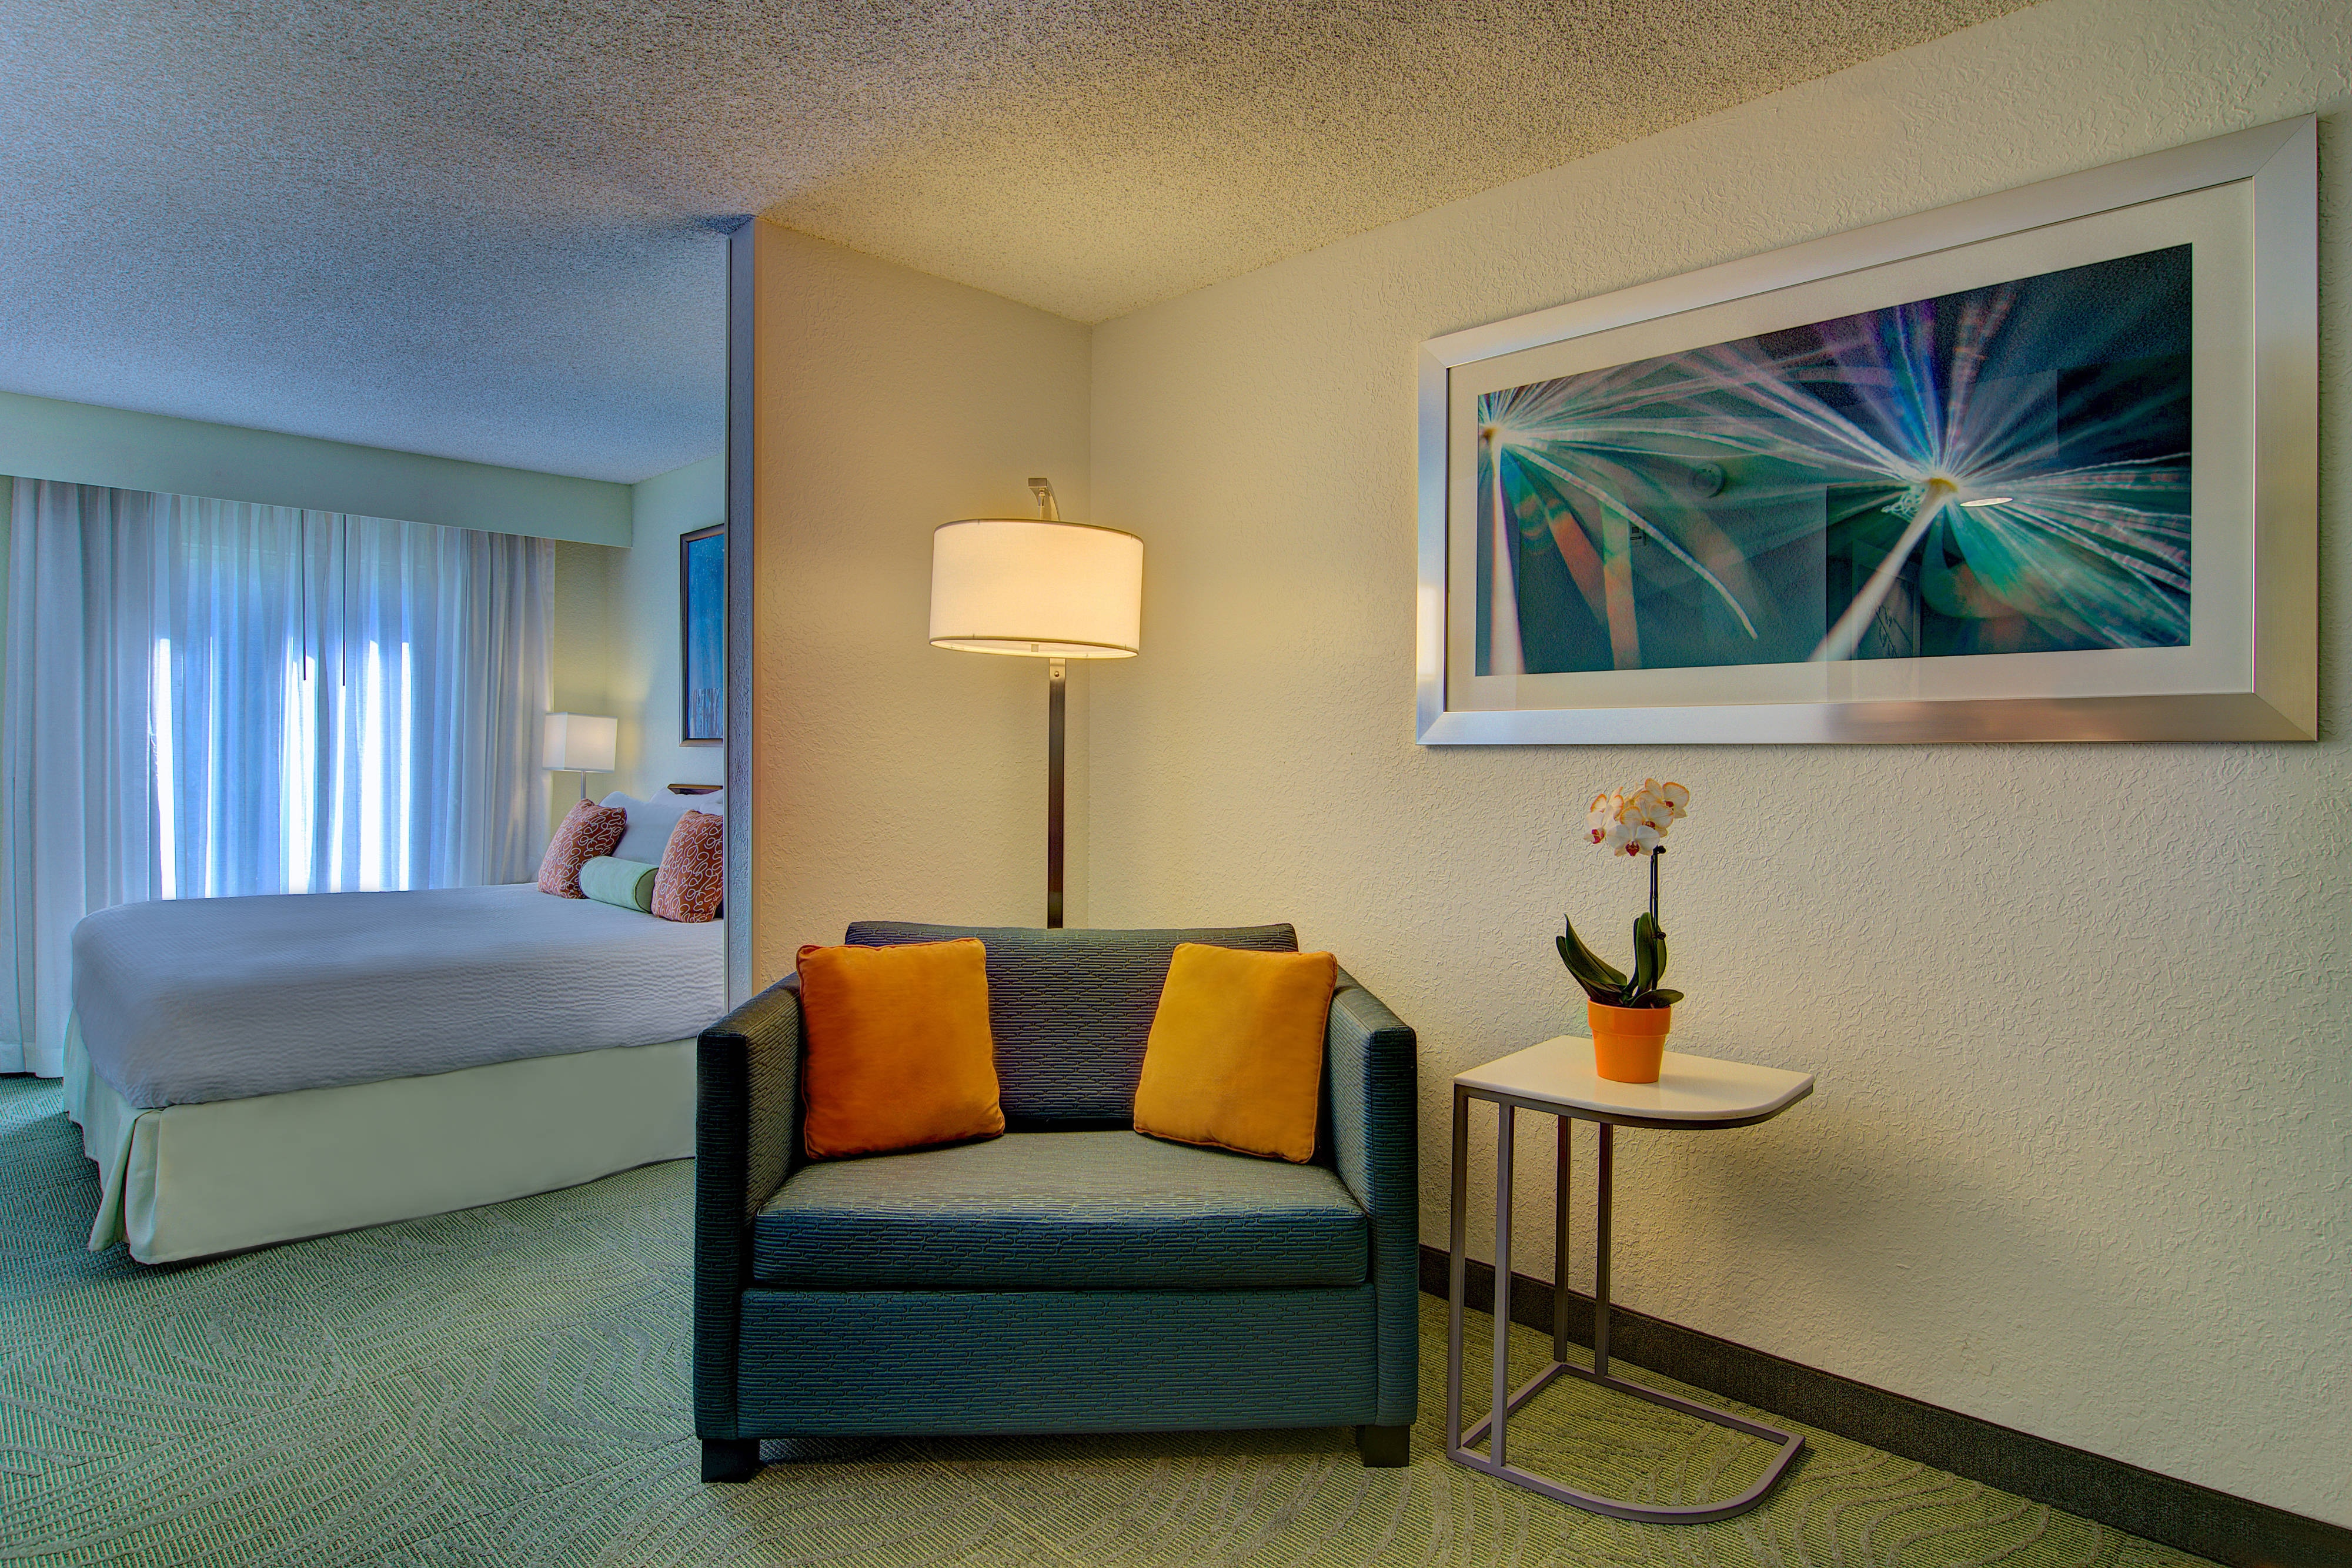 SpringHill Suites Boca Raton King Bed Suite